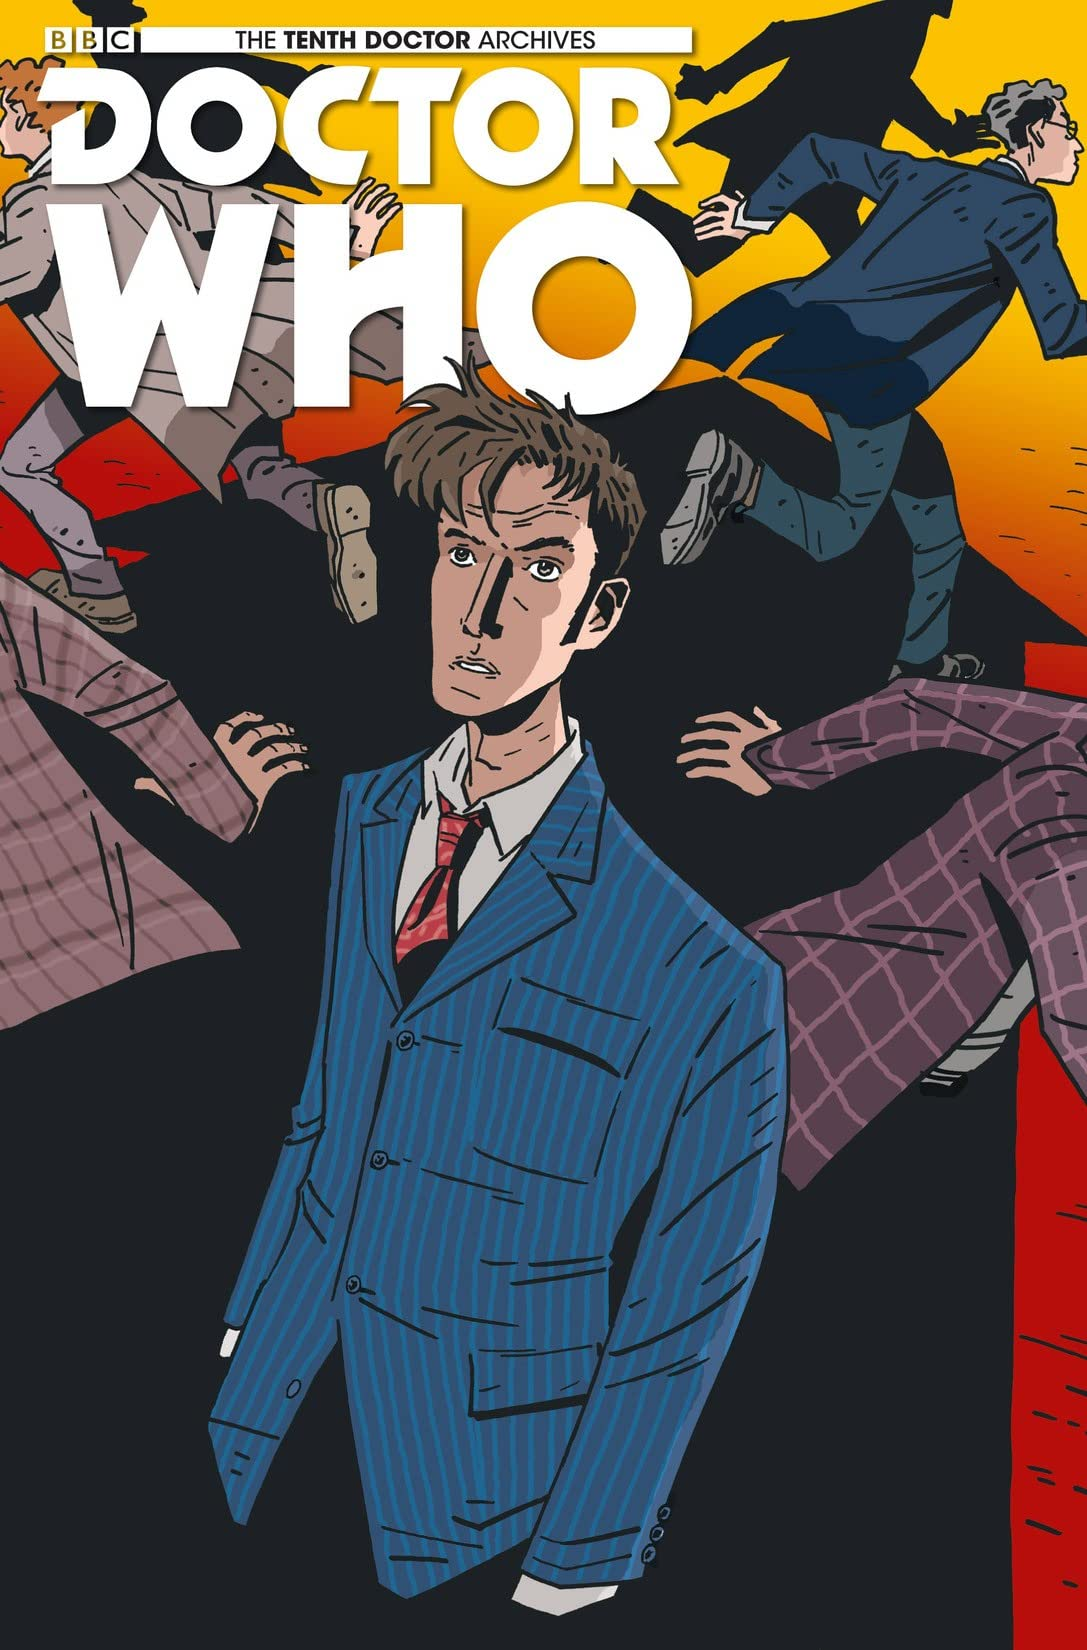 Doctor Who: The Tenth Doctor Archives #20